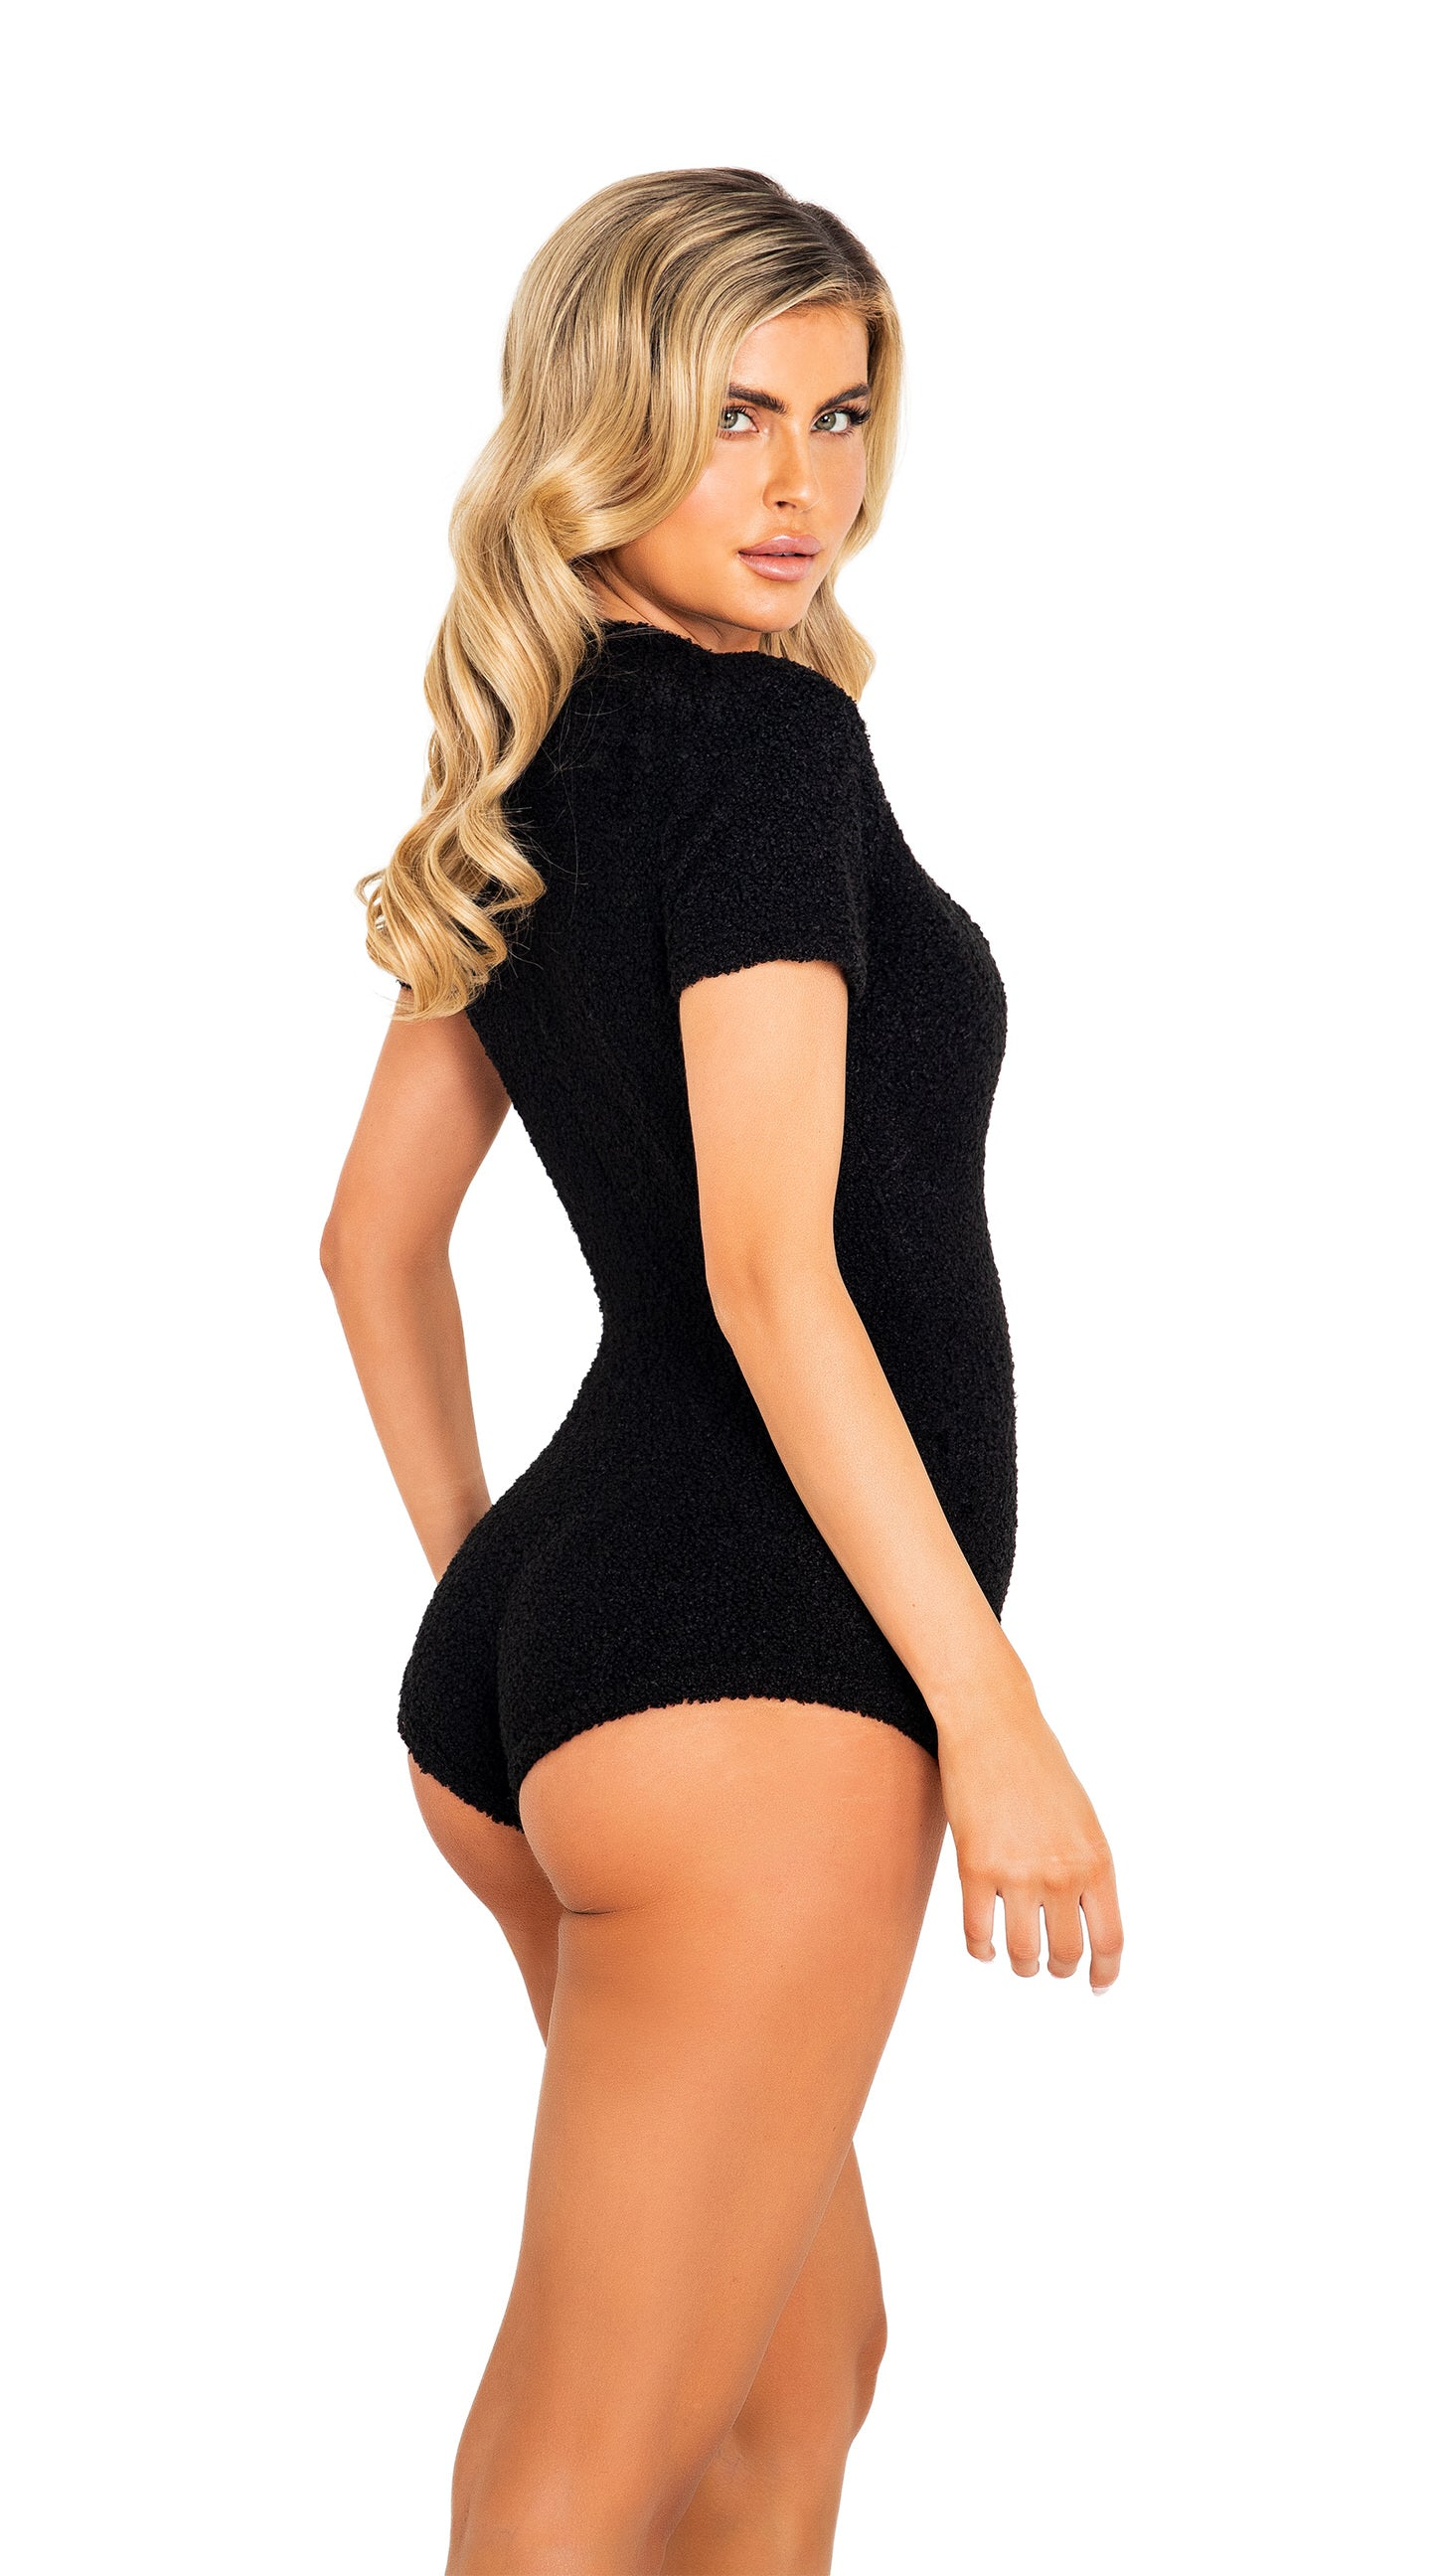 LI413 - 1pc Cozy & Comfy Fuzzy Romper with Snap Closure